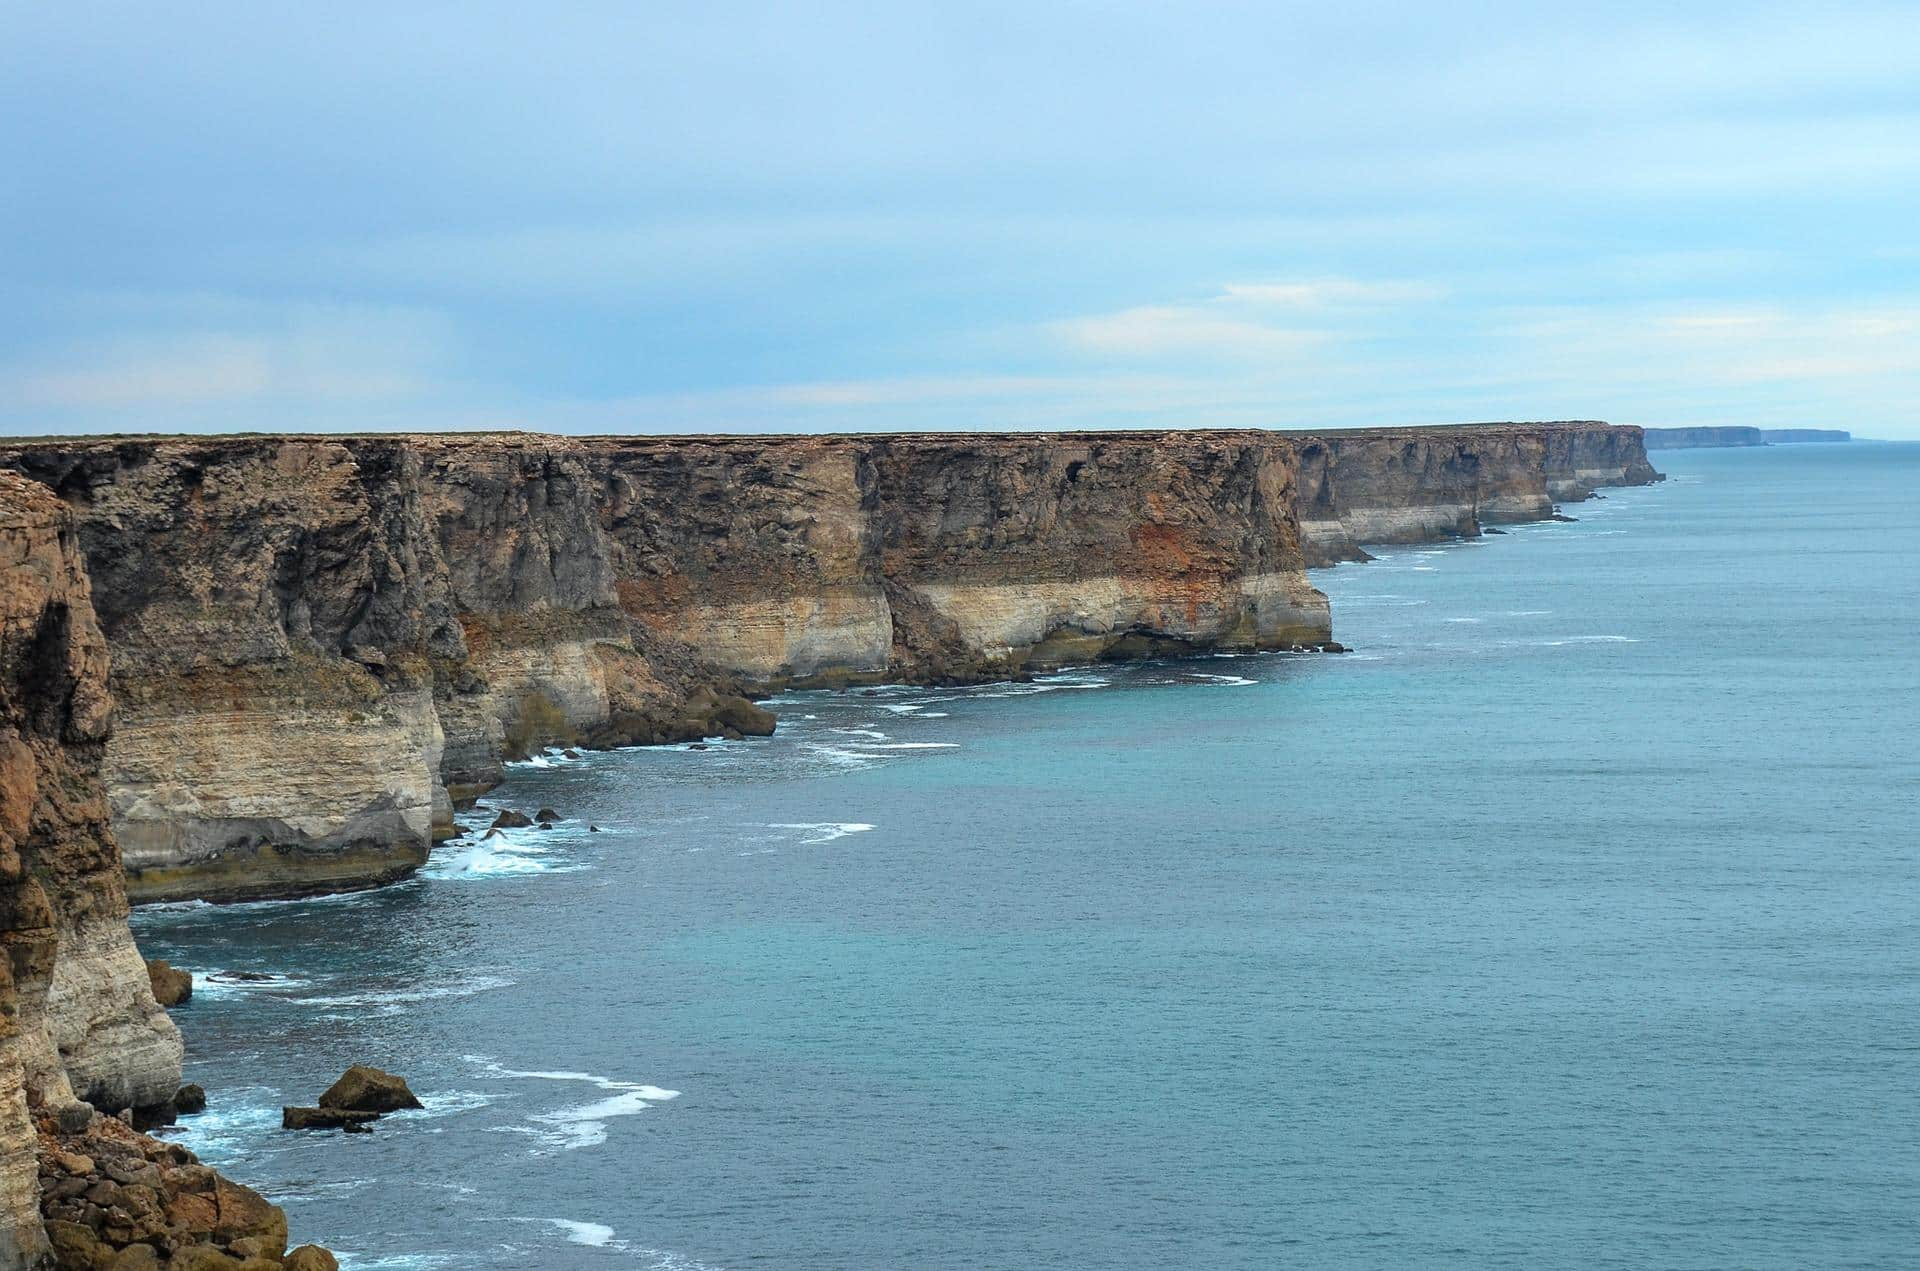 Western Australia's best road trip destinations - The Great Australian Bight features the longest stretch of ocean cliffs in the world, Australian Outdoor Living.